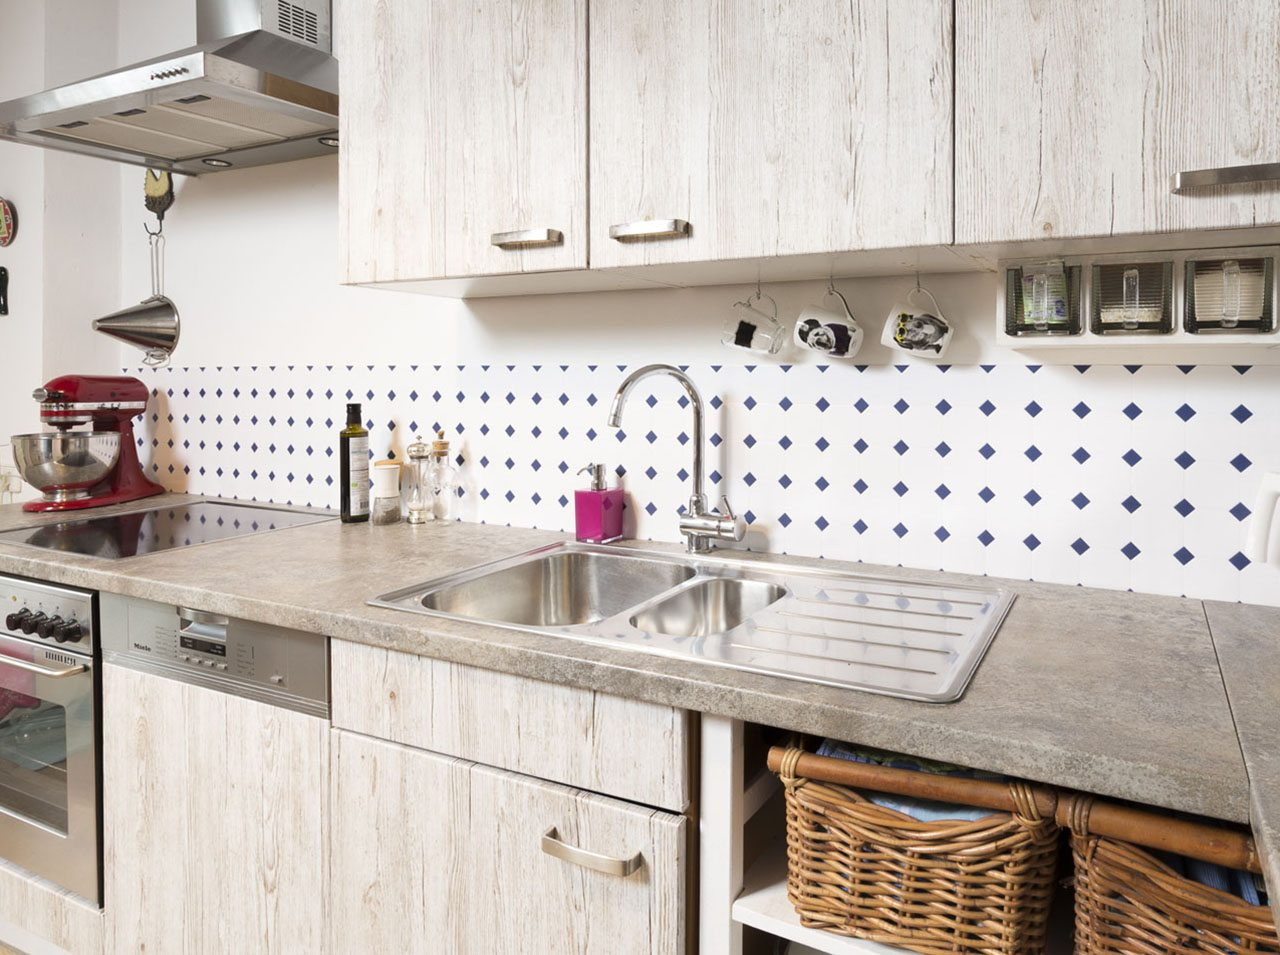 D C Fix Renovation Made Easy 6 Steps To Your Dream Kitchen